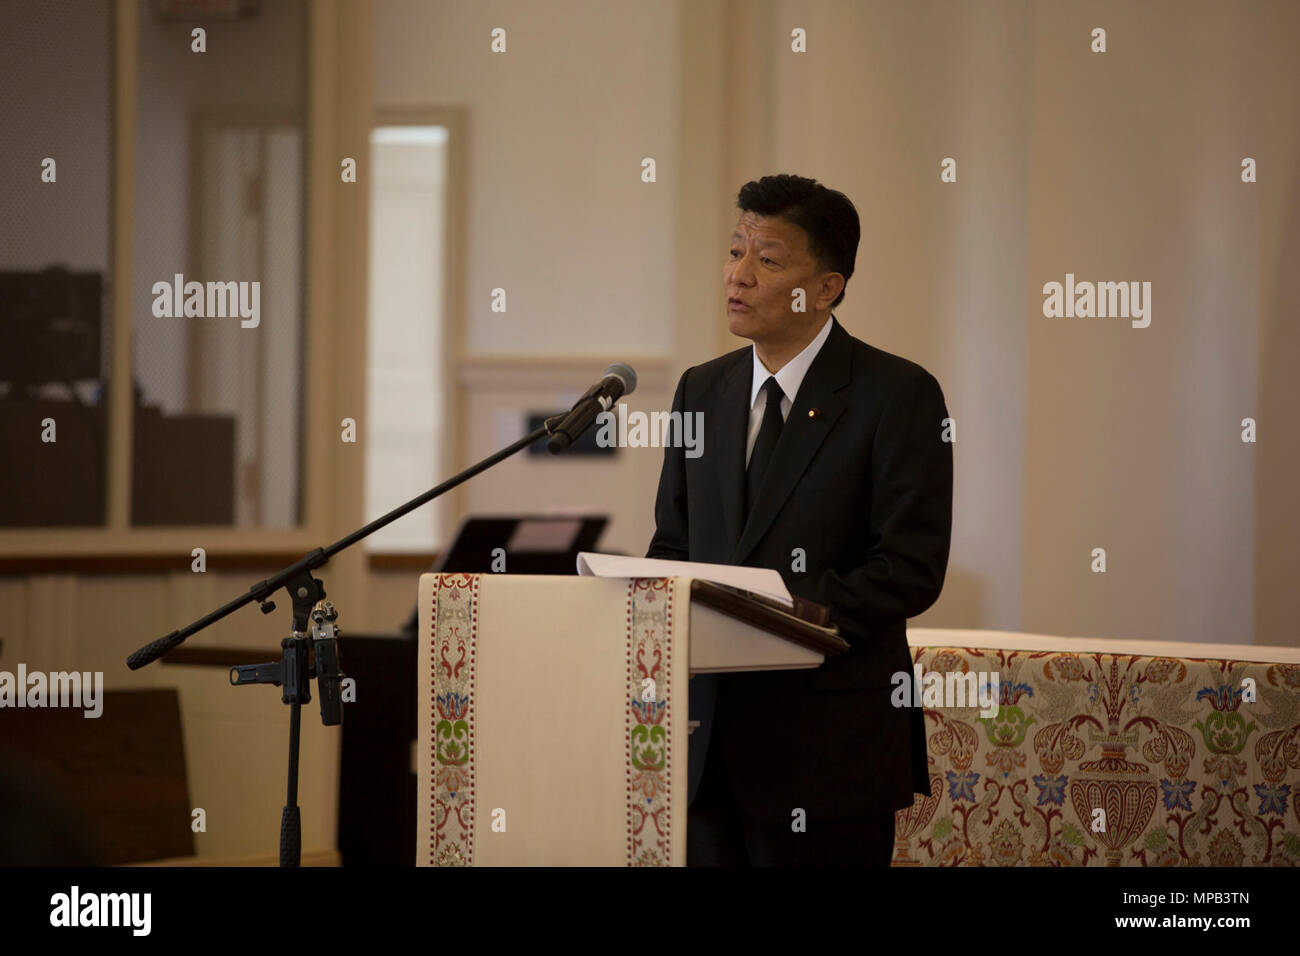 """Yoshitaka Shindo, member of the National Diet of Japan gives remarks during the Memorial Service of retired U.S. Marine Corps Lt. Gen. Lawrence F. Snowden at the U.S. Marine Memorial Chapel, Quantico, Va., April 8, 2017Snowden retired in 1979 after nearly 40 years of service, fought in engagements during World War II, the Korean War, and Vietnam. He passed away Feb. 18, 2017. He was prominently known after retirement for organizing joint """"Reunion of Honor"""" missions which is an opportunity for Japanese and U.S. veterans and their families, dignitaries, leaders and service members from both nati Stock Photo"""